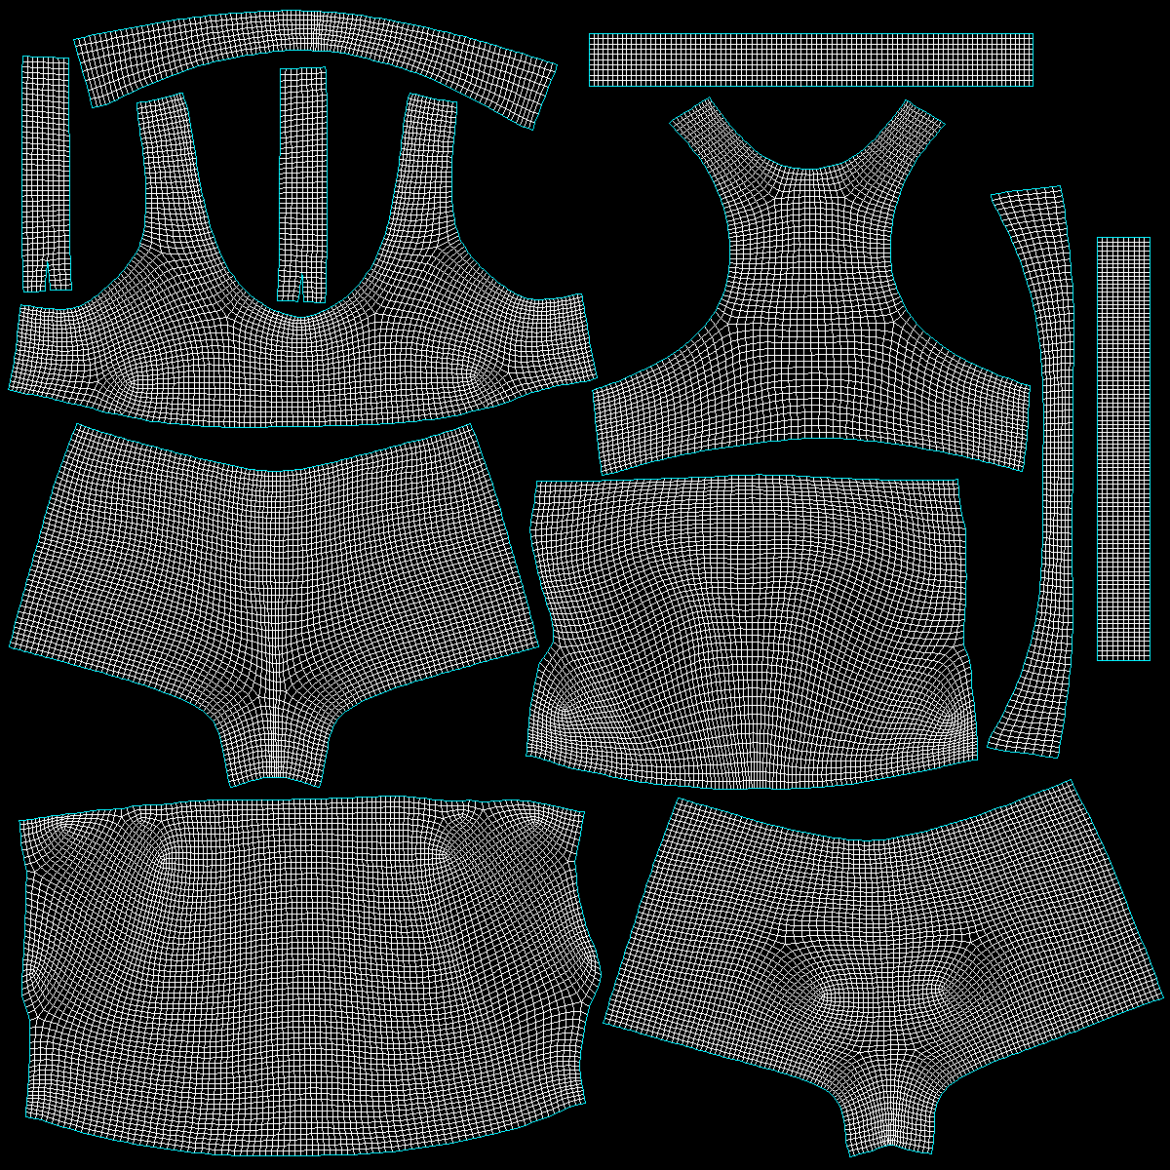 woman sportswear 03 base mesh design kit 3d model 3ds max fbx blend c4d dae ma mb  obj ztl 321881